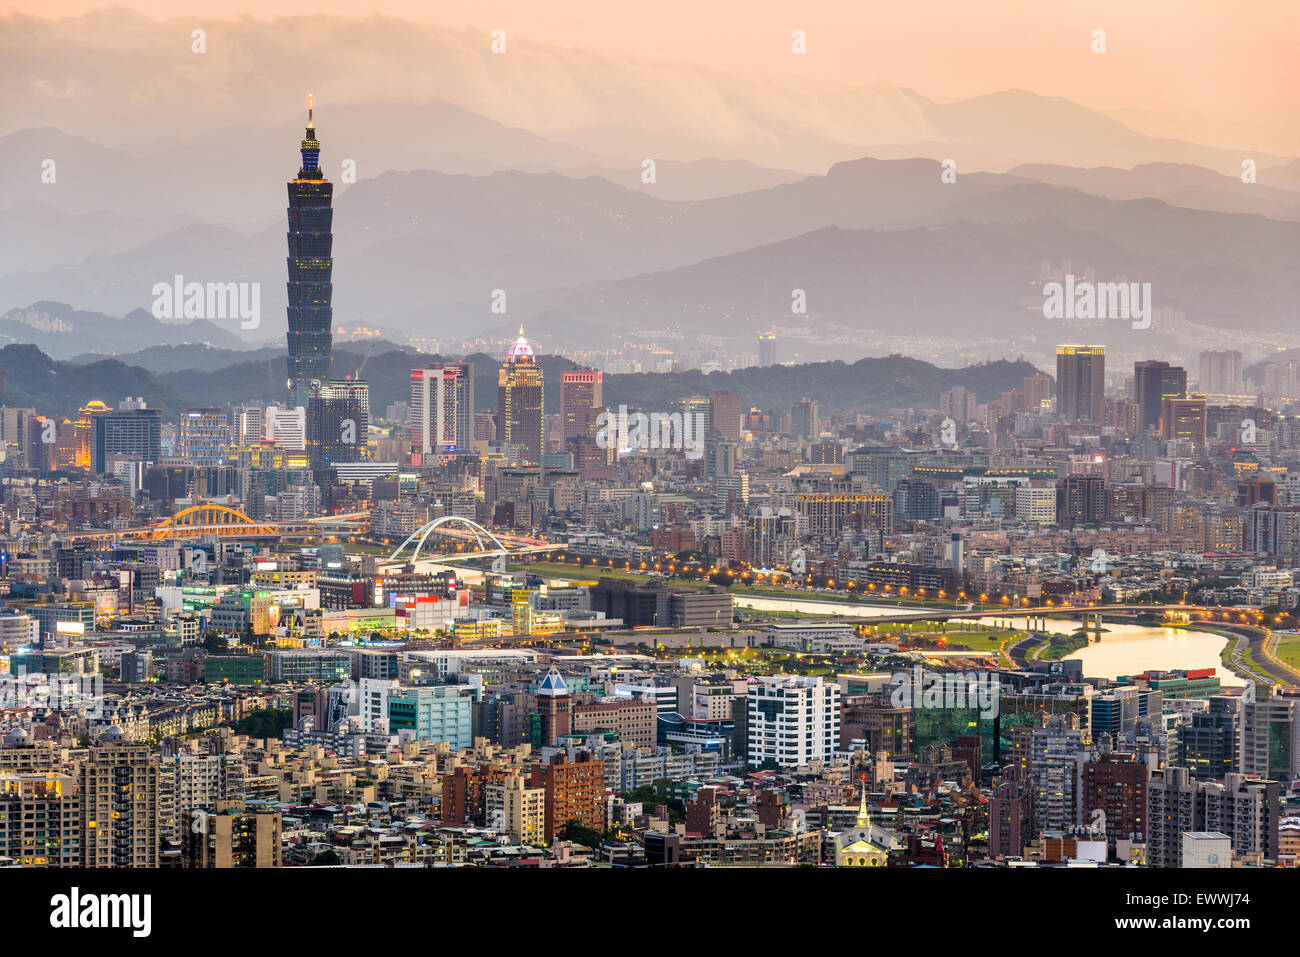 Taipei, Taiwan city skyline. - Stock Image